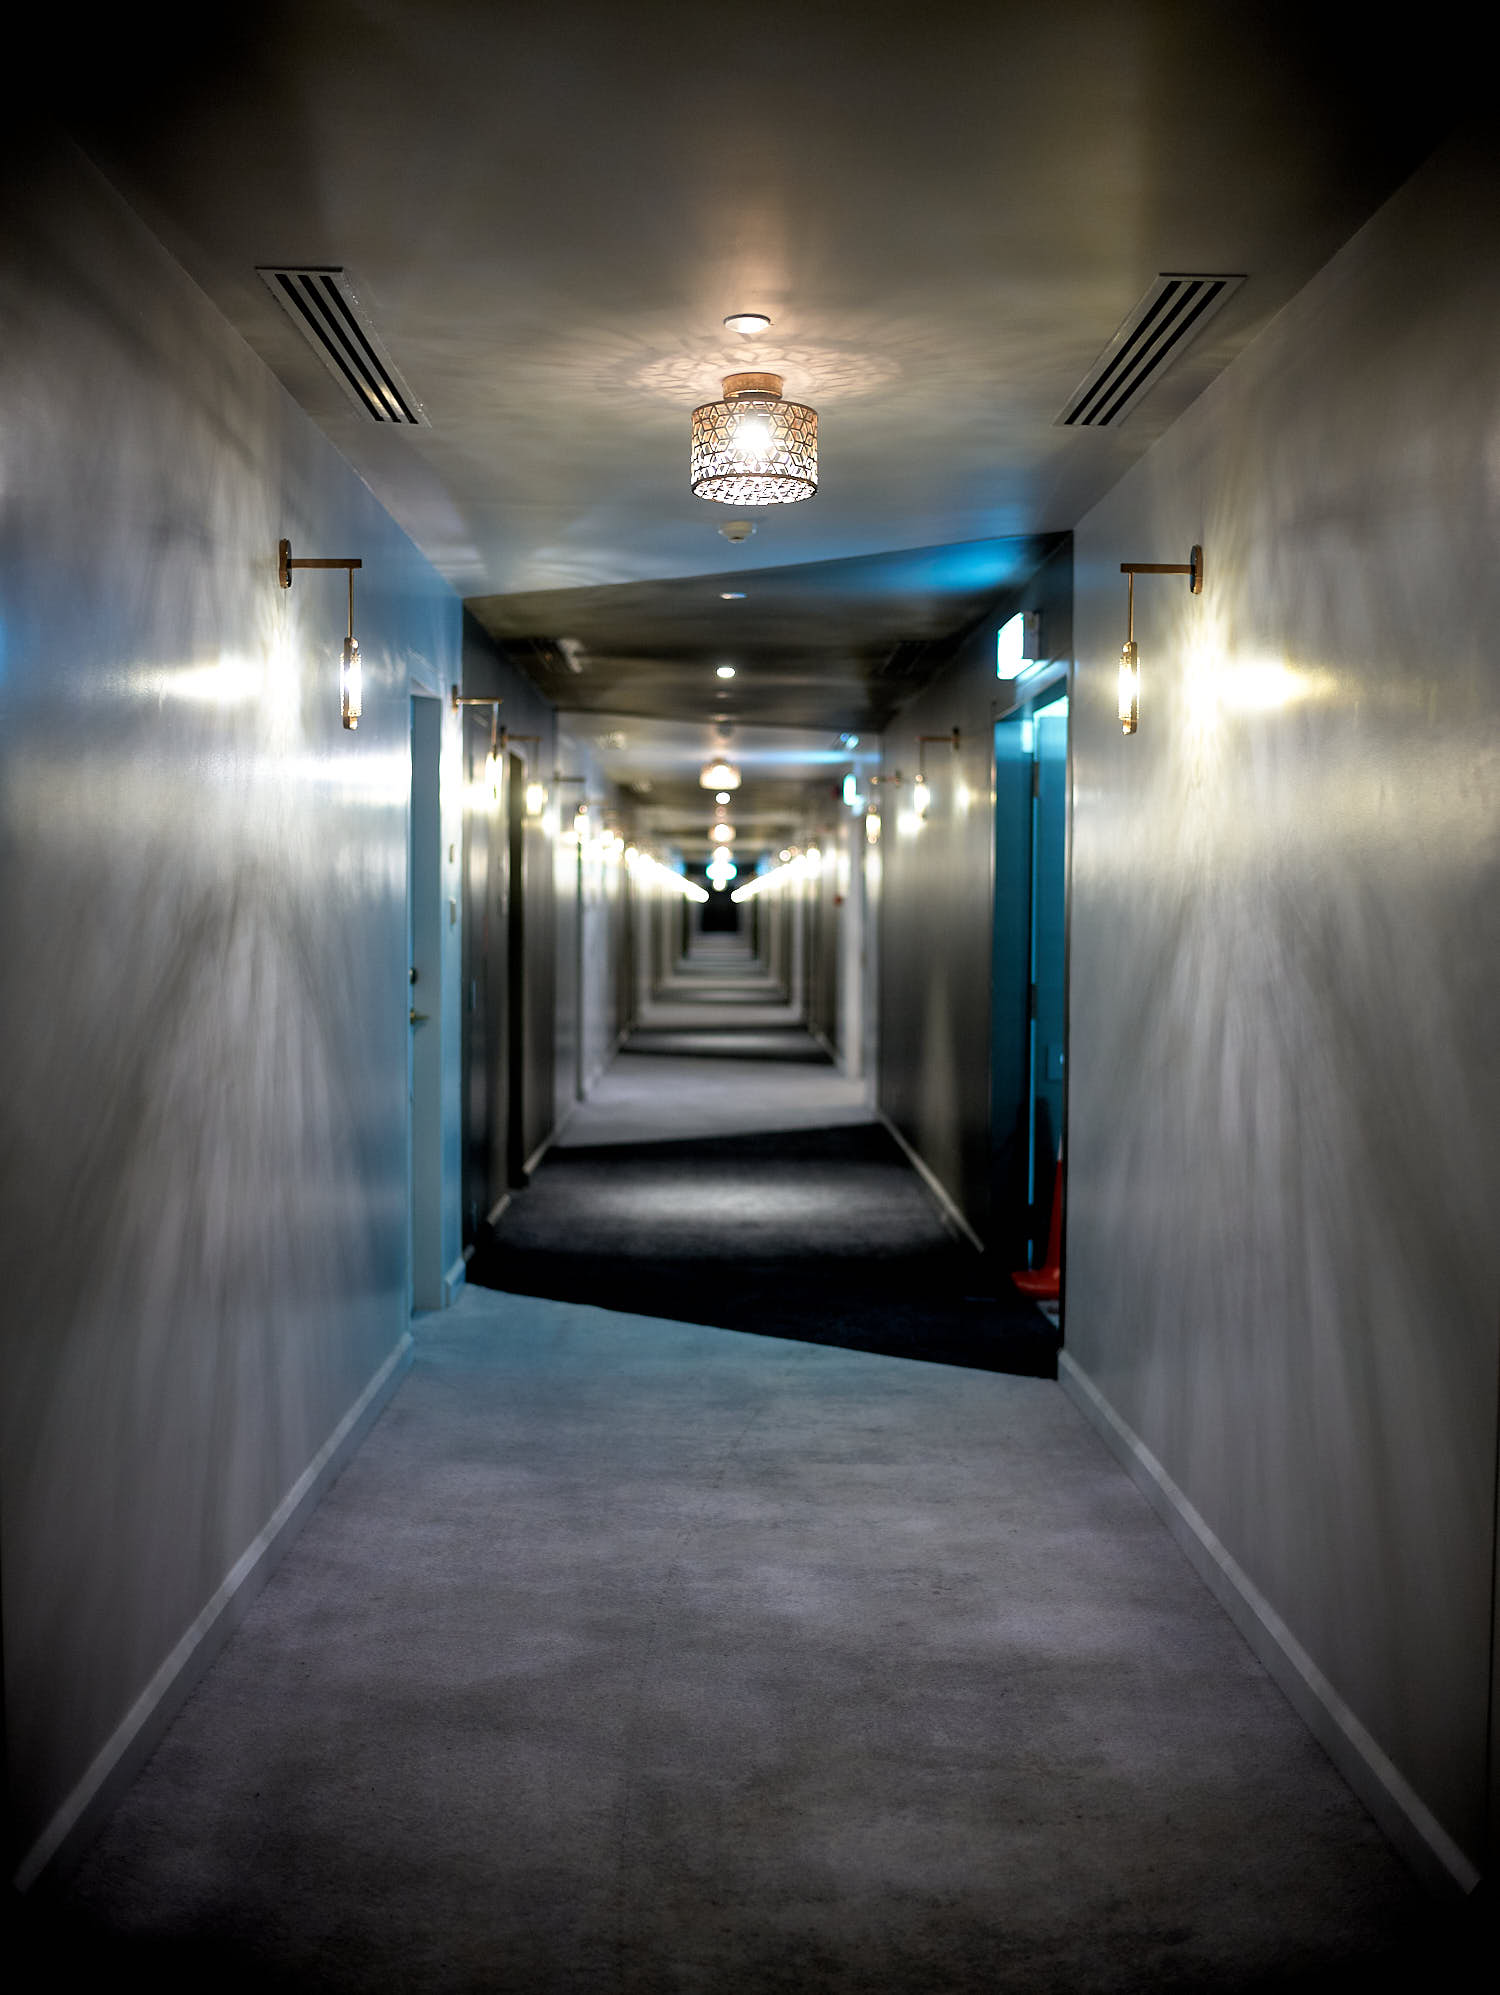 Hallway of The Prestige Hotel